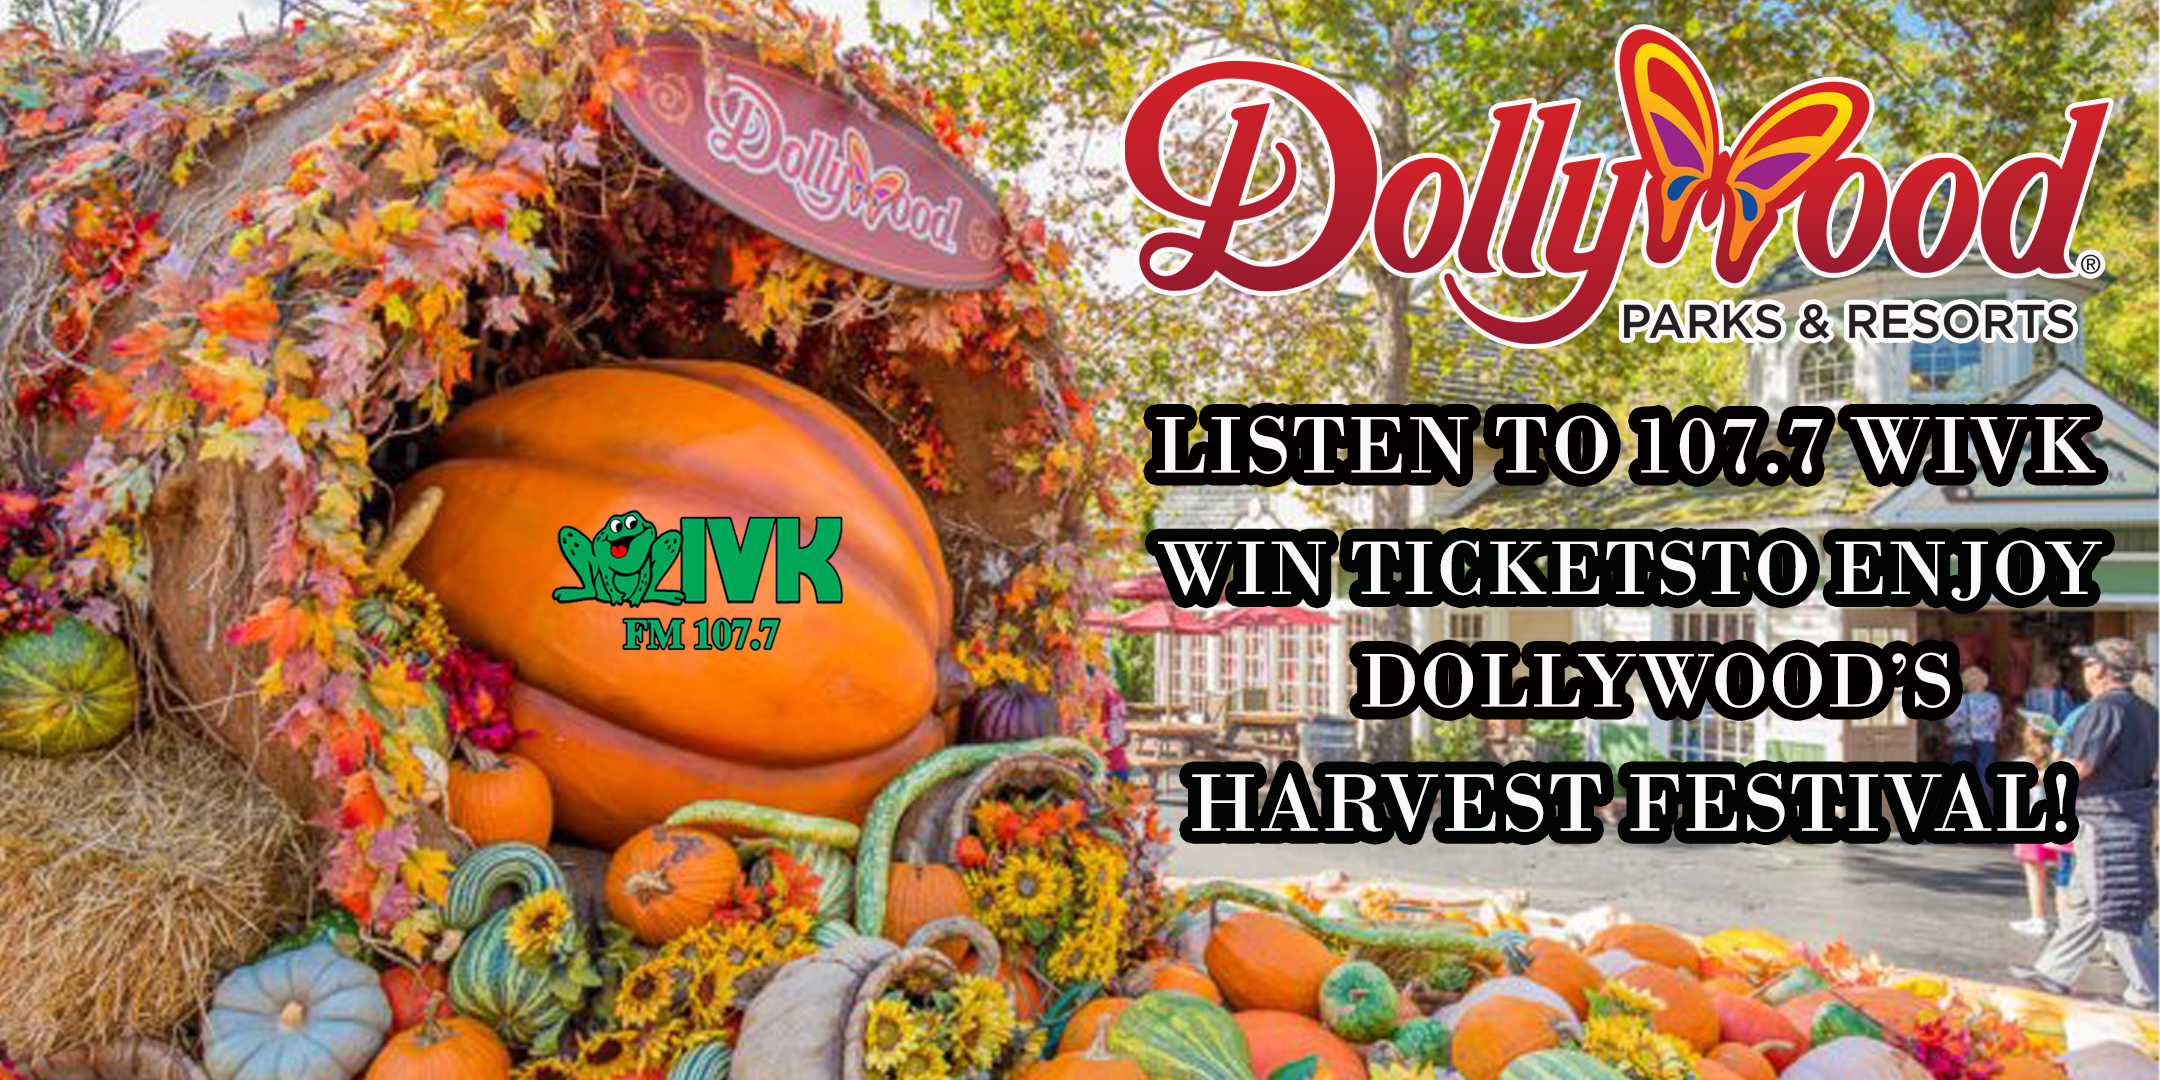 Win tickets to enjoy Dollywood's Harvest Festival!